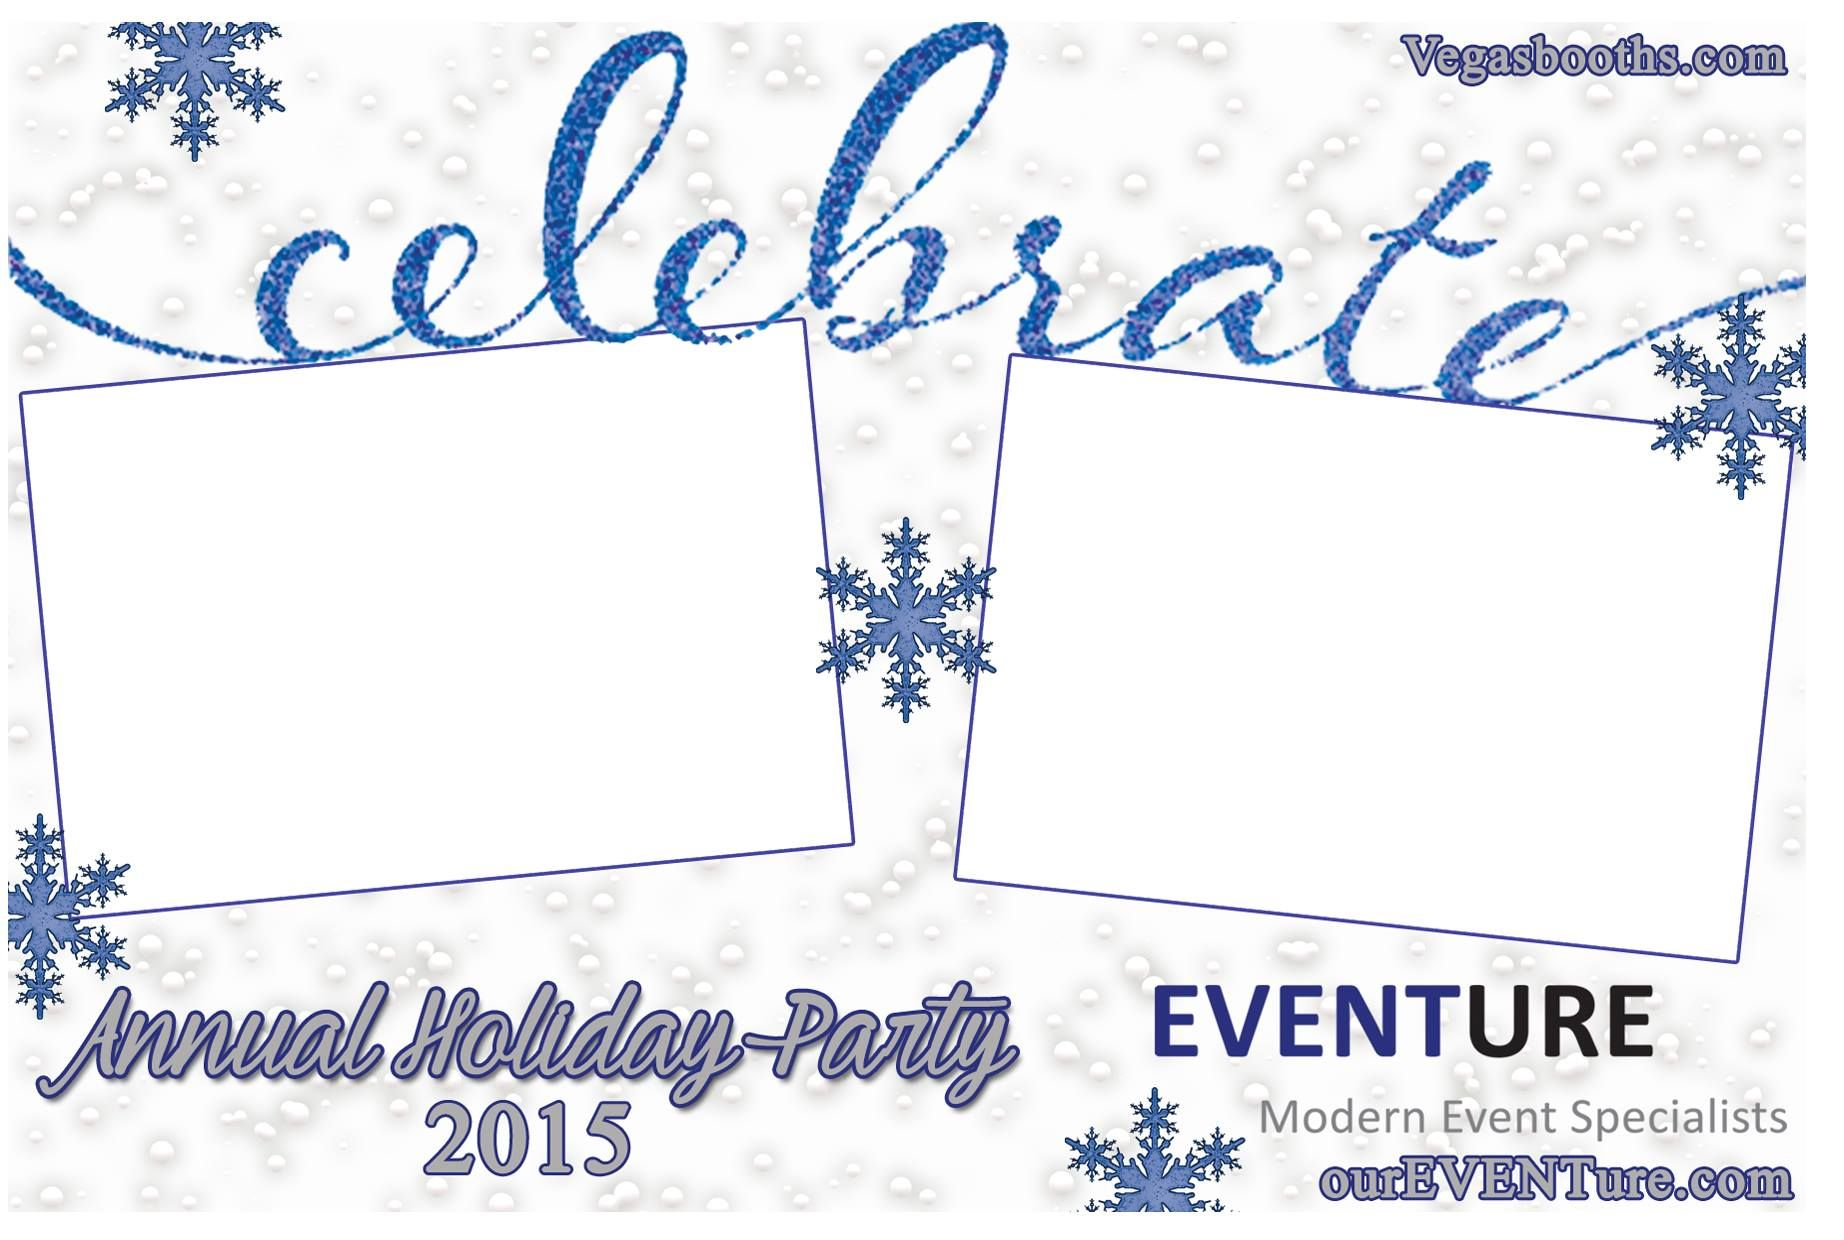 Celebrate Eventure's 3rd year in Business and Annual